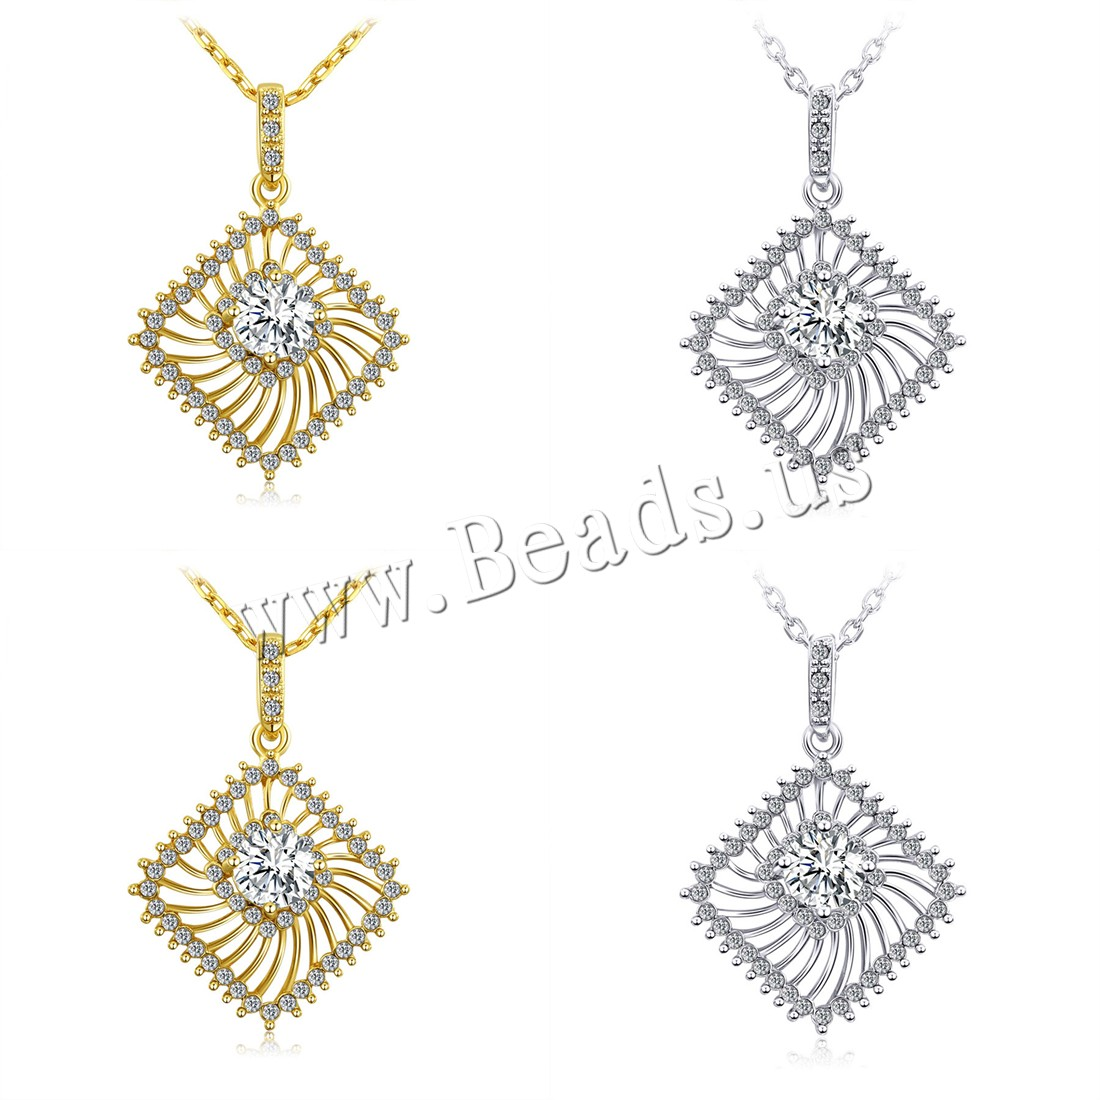 Buy Zinc Alloy Jewelry Necklace 2inch extender chain plated oval chain & woman & rhinestone & hollow colors choice nickel lead & cadmium free 38mm Sold Per Approx 17.7 Inch Strand